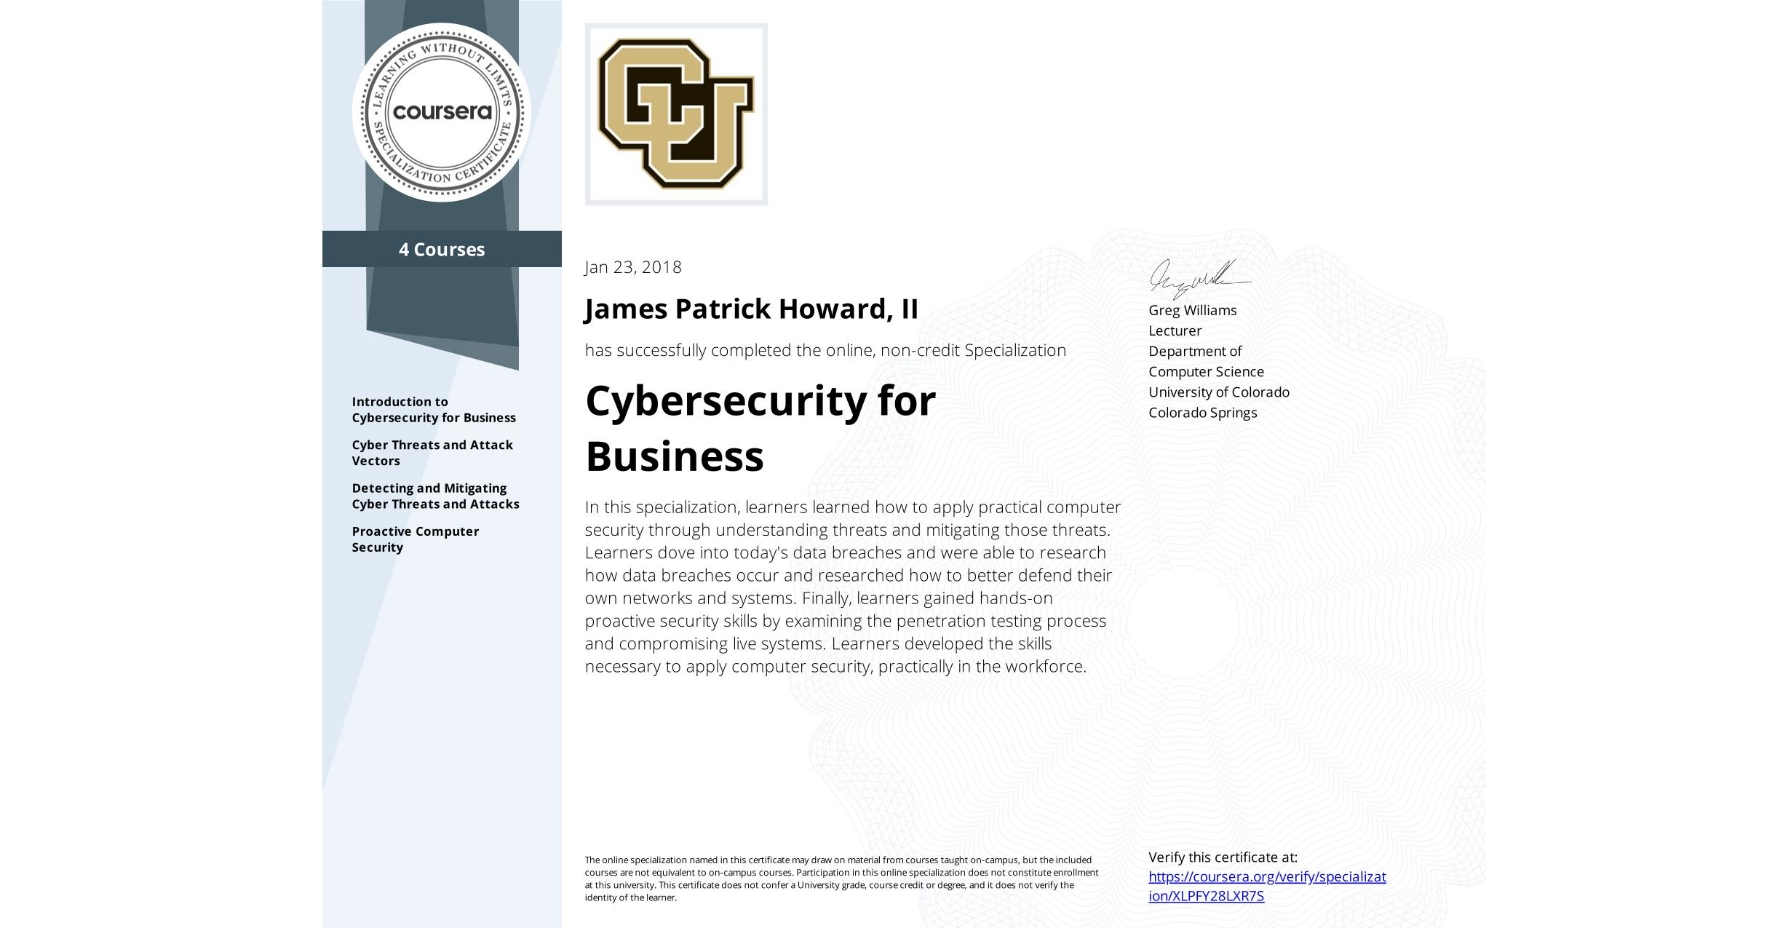 View certificate for James Patrick Howard, II, Cybersecurity for Business, offered through Coursera. In this specialization, learners learned how to apply practical computer security through understanding threats and mitigating those threats.  Learners dove into today's data breaches and were able to research how data breaches occur and researched how to better defend their own networks and systems.  Finally, learners gained hands-on proactive security skills by examining the penetration testing process and compromising live systems.  Learners developed the skills necessary to apply computer security, practically in the workforce.